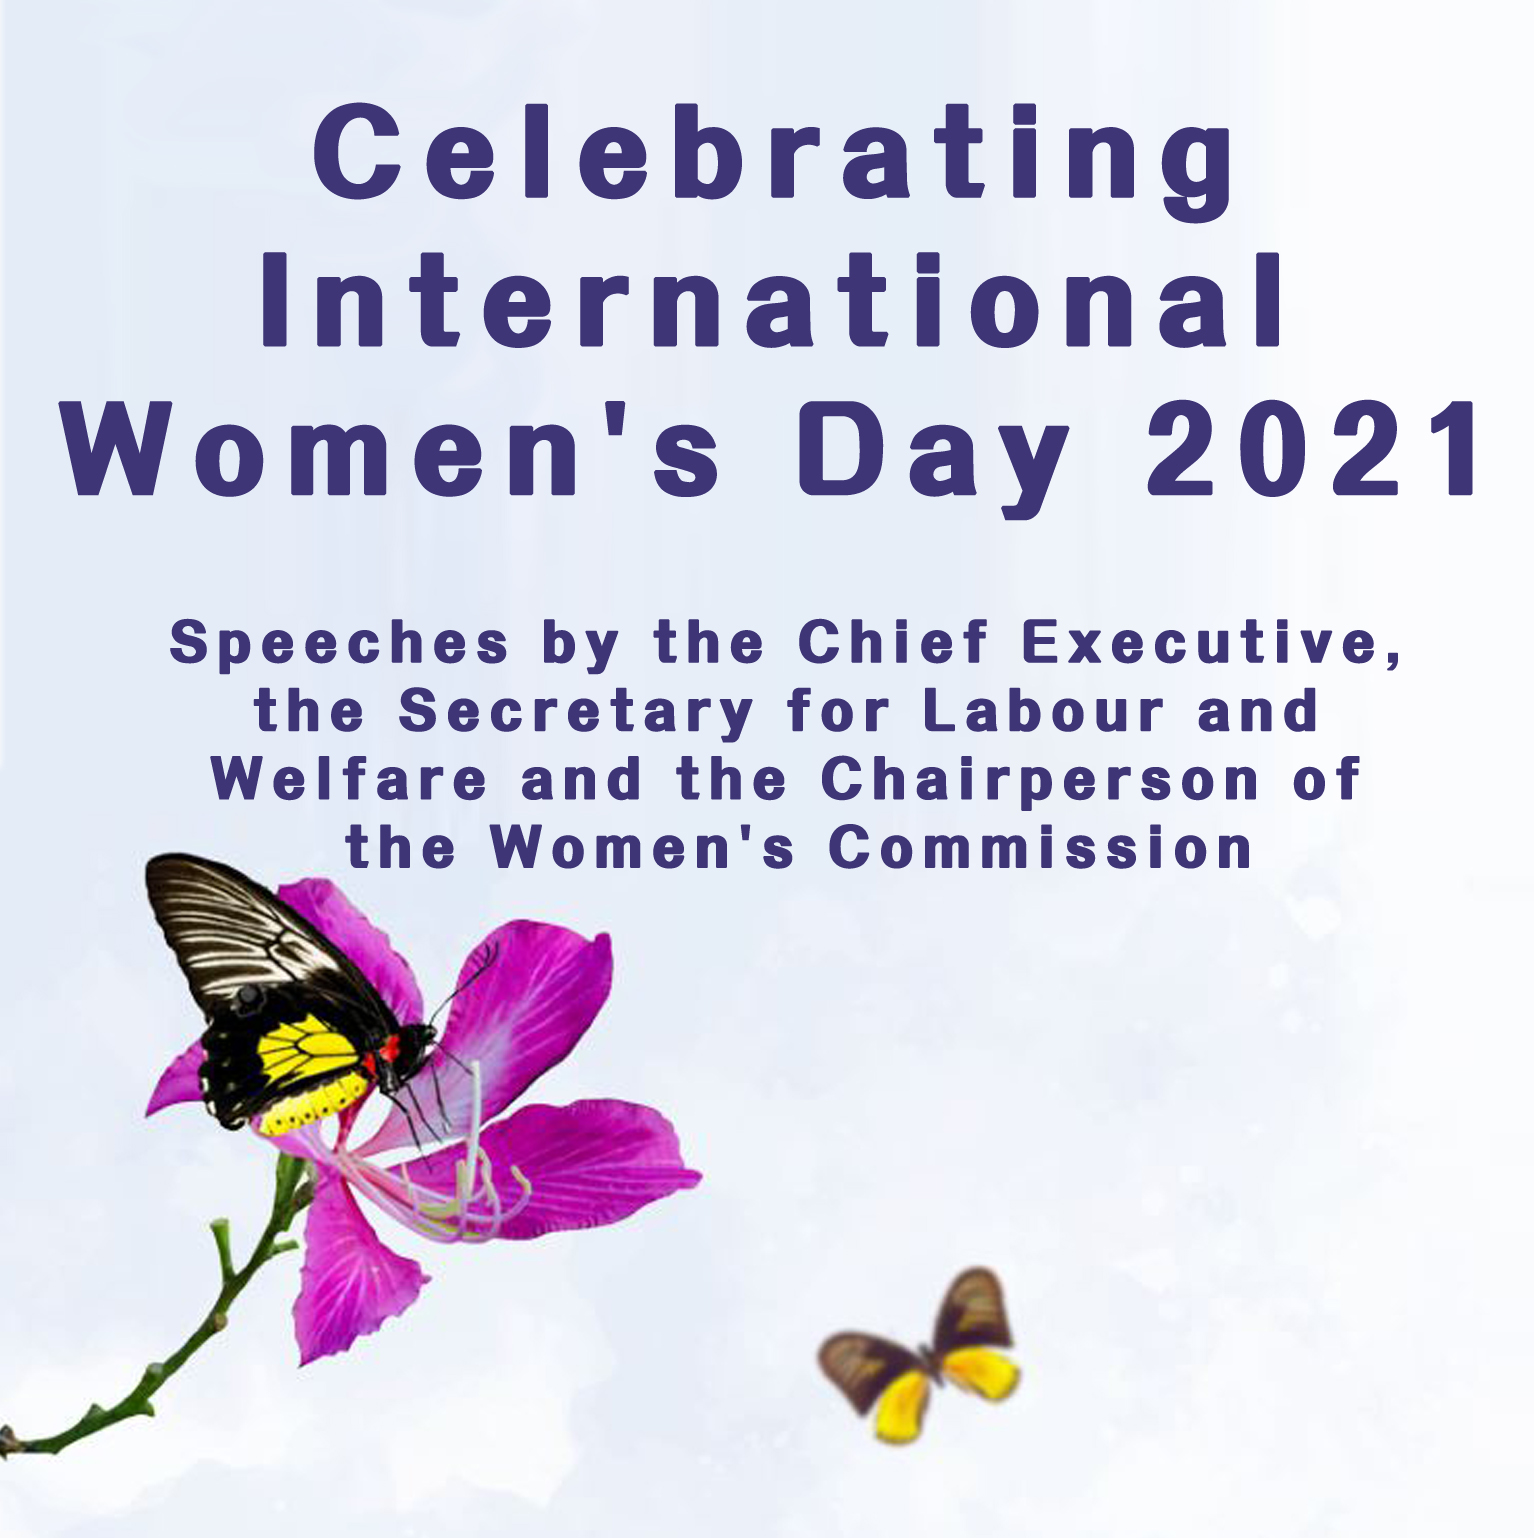 Celebrating International Women's Day 2021